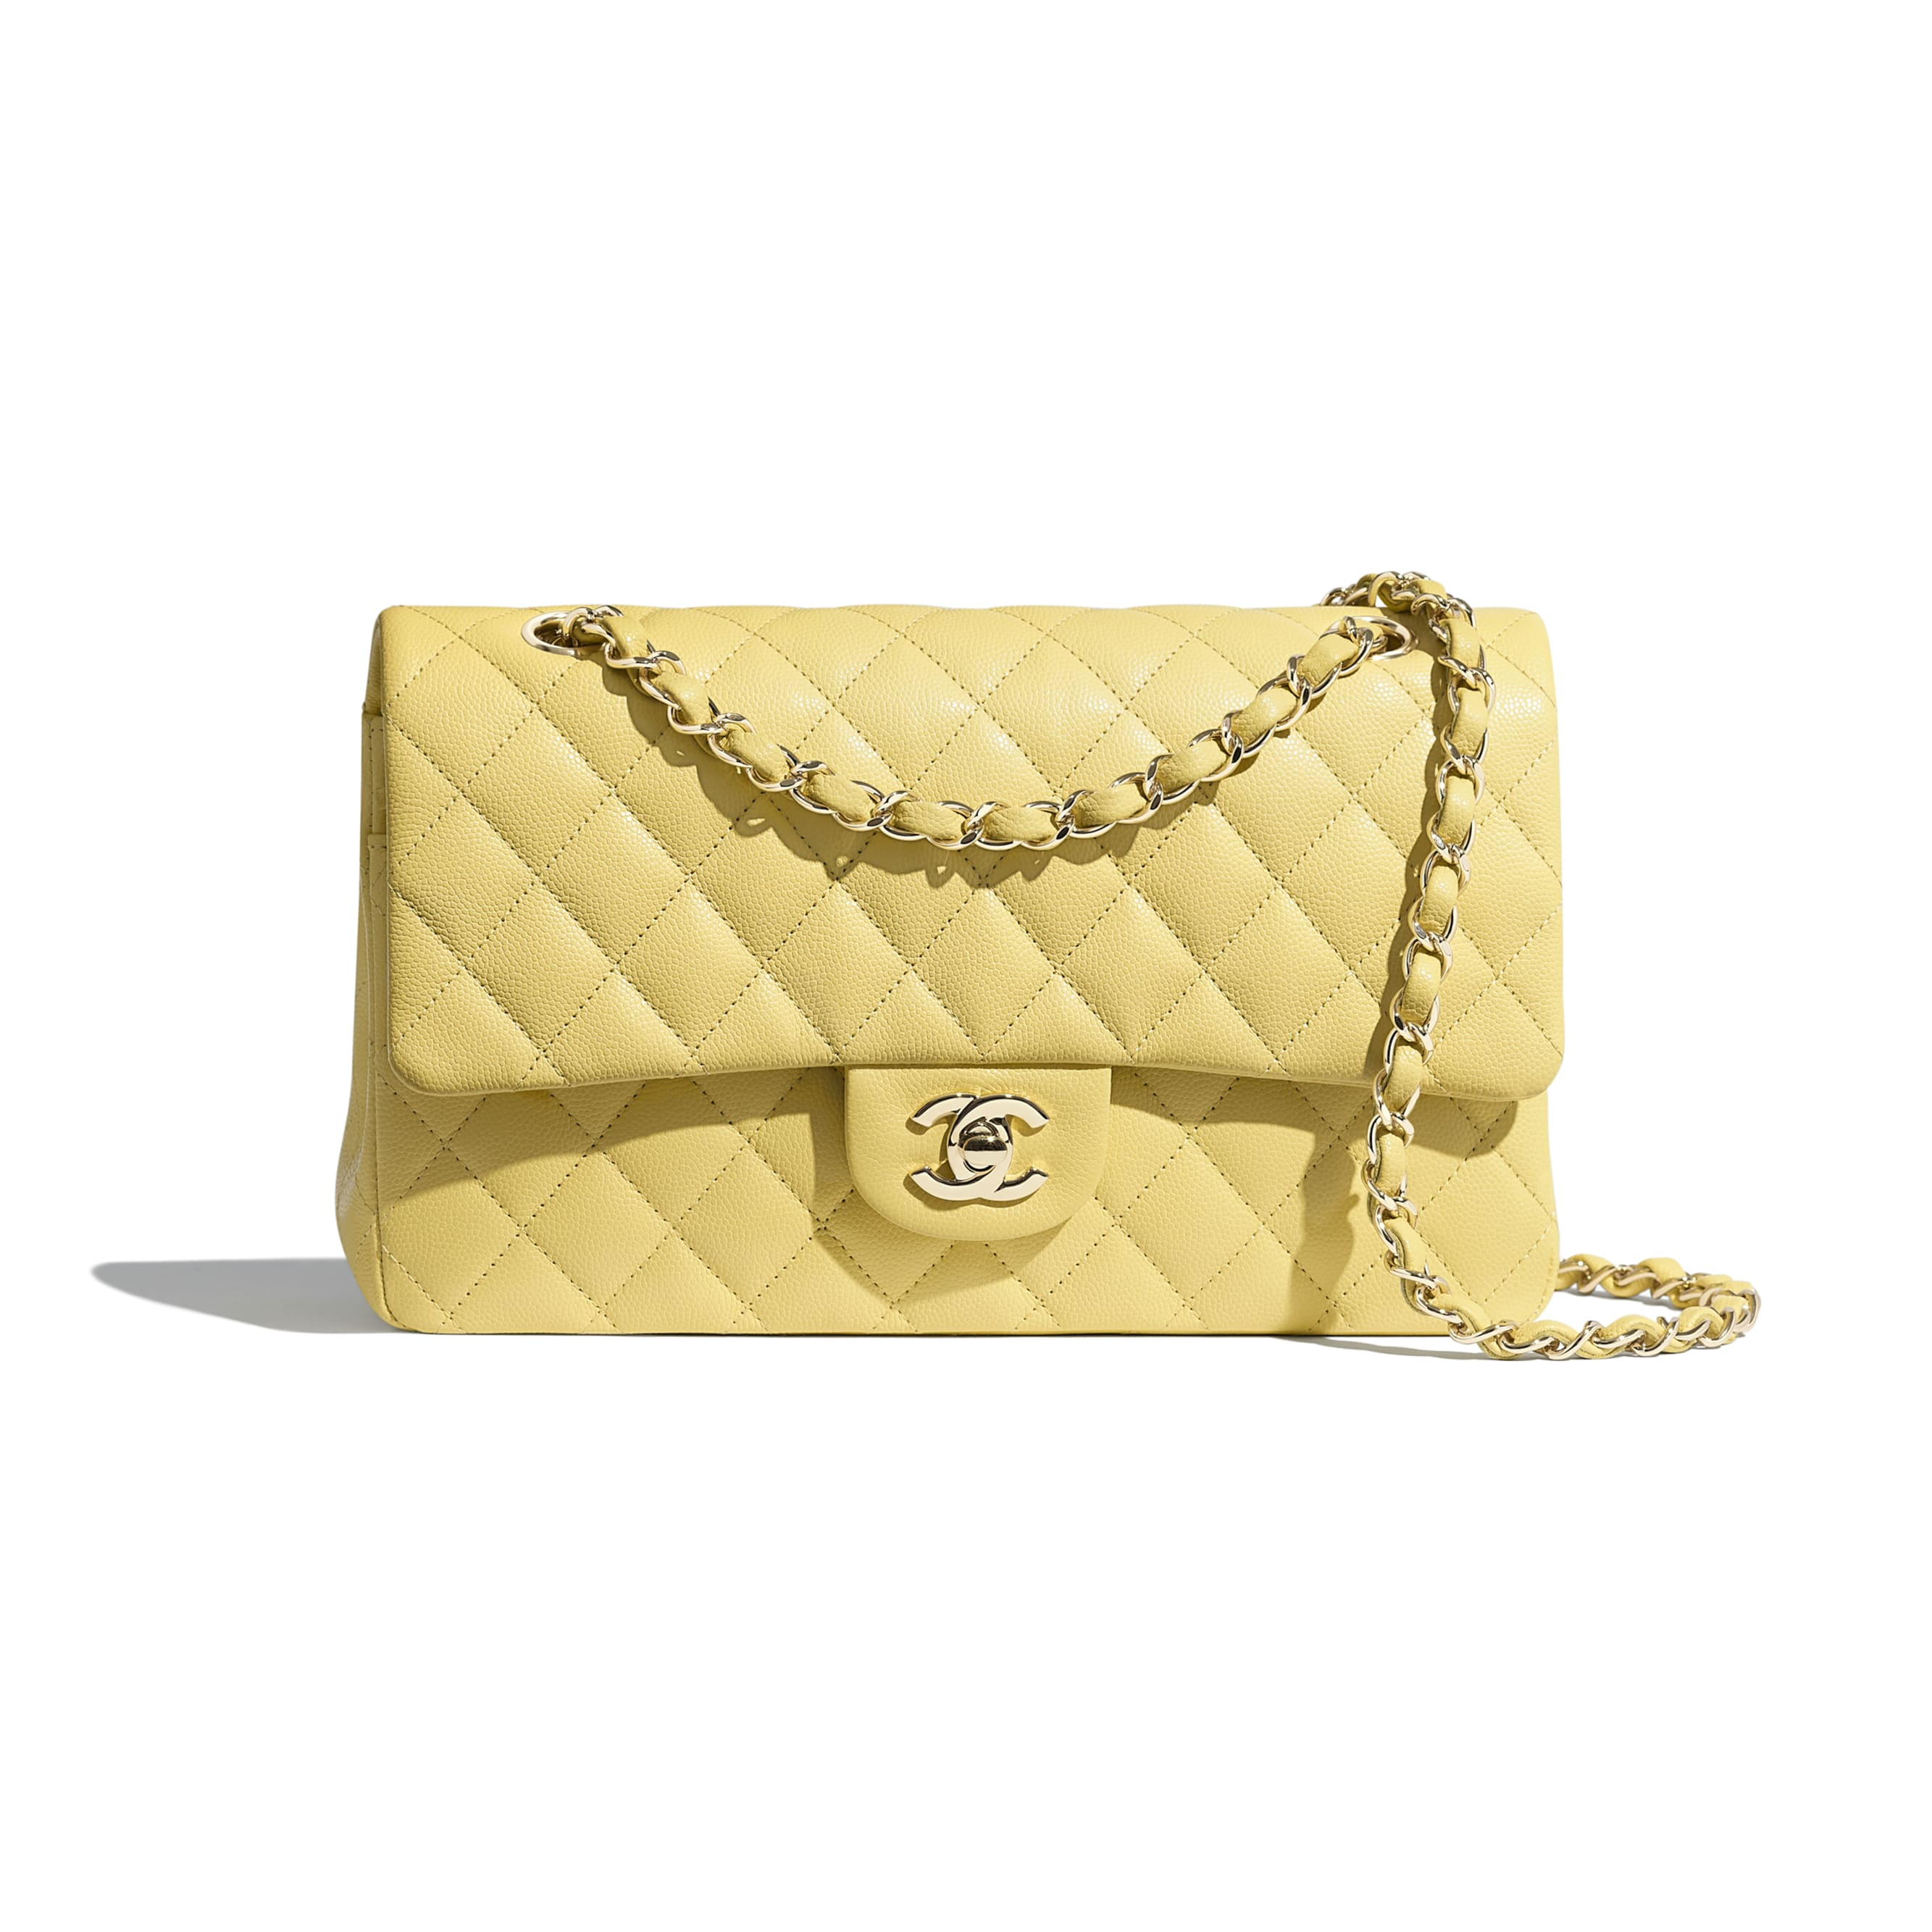 Classic Handbag - Yellow - Grained Calfskin & Gold-Tone Metal - Default view - see standard sized version